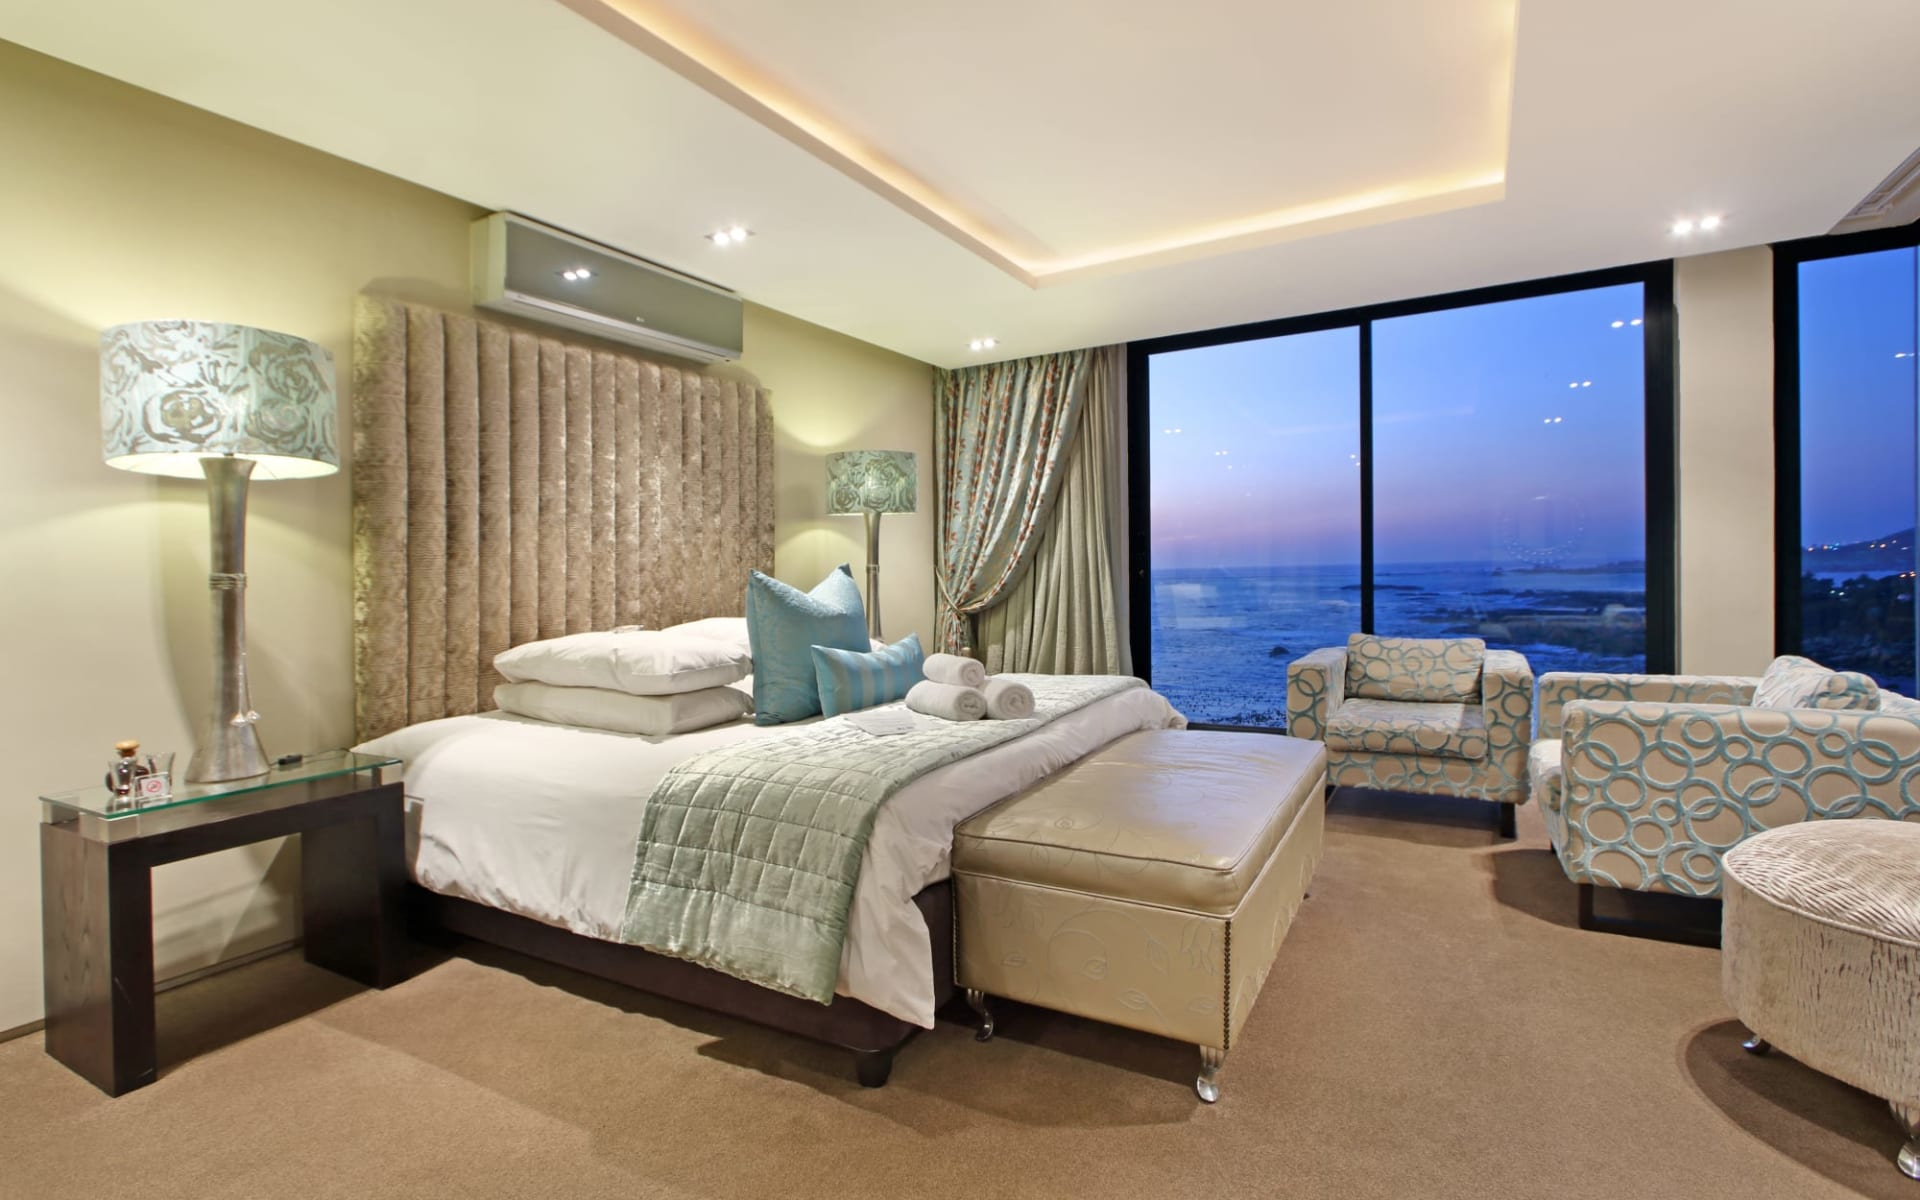 Azamare in Camps Bay:  Luxury Suite